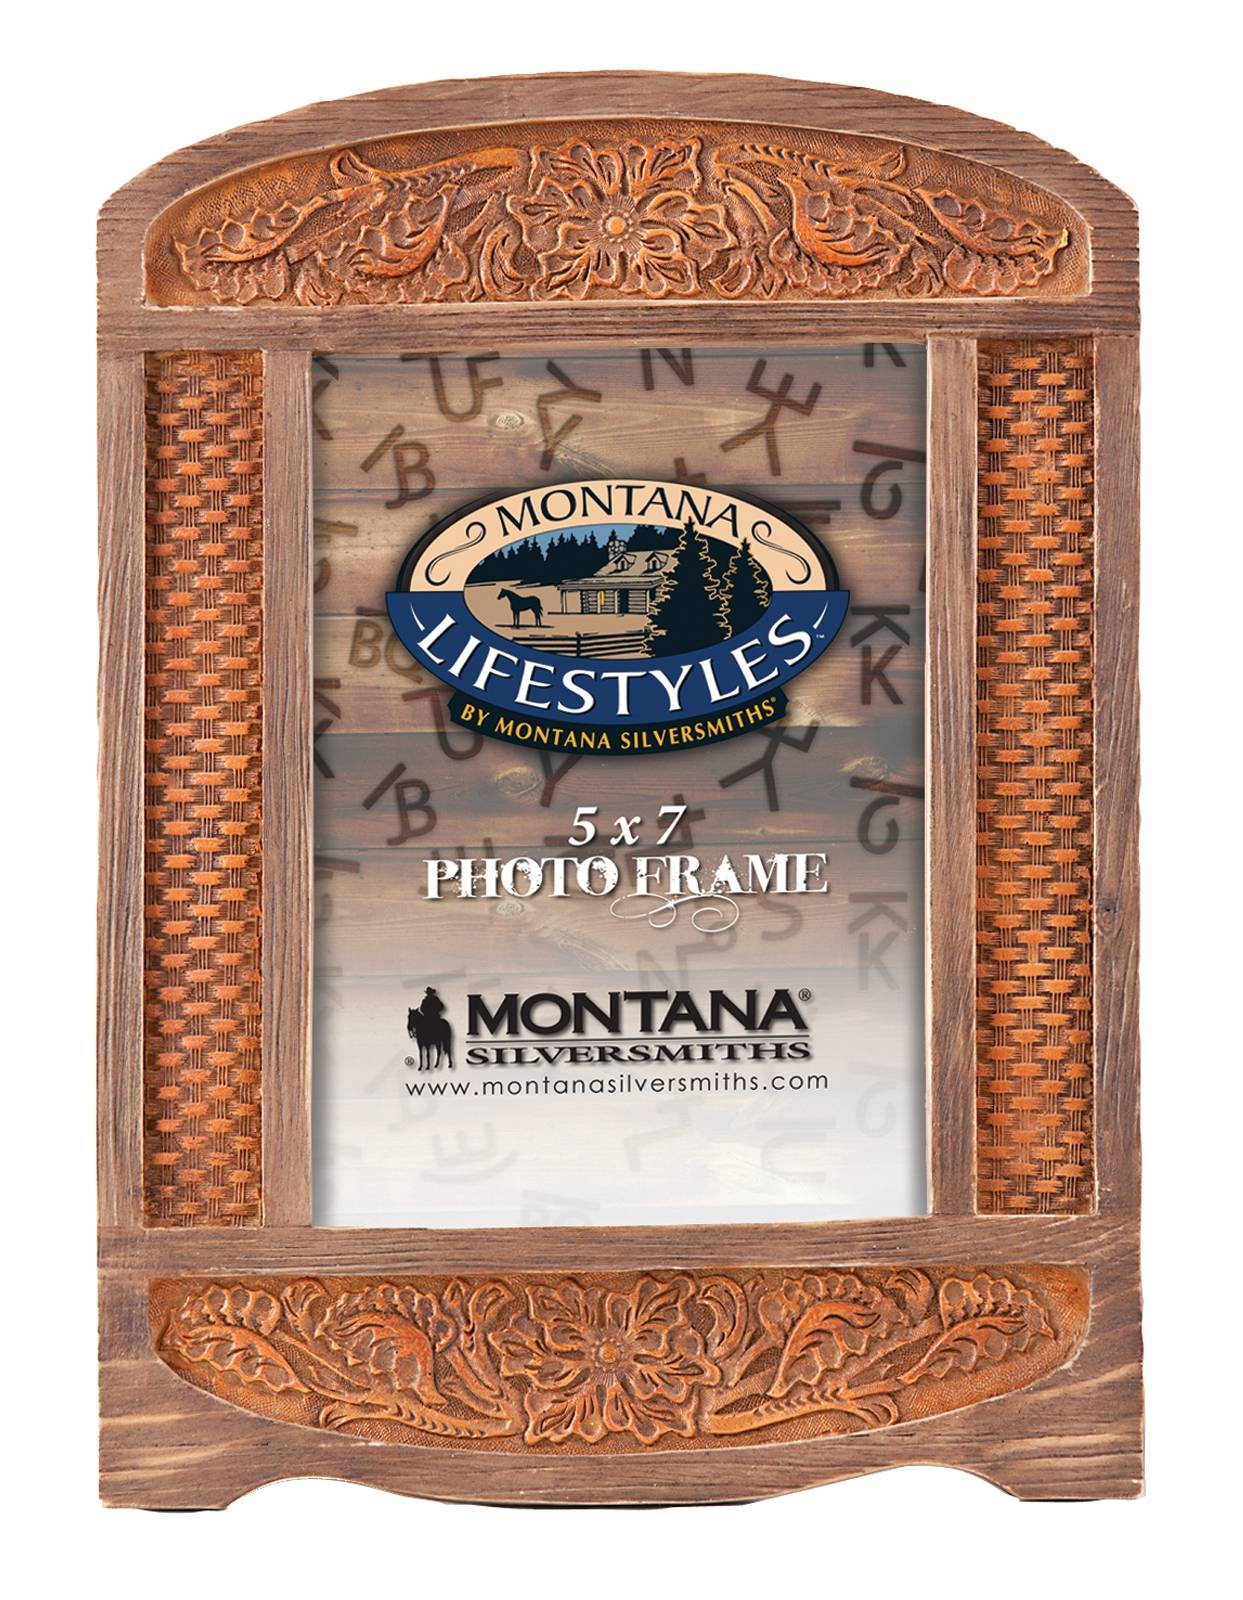 Montana Silversmiths Arched Tooled Leather Photo Frame